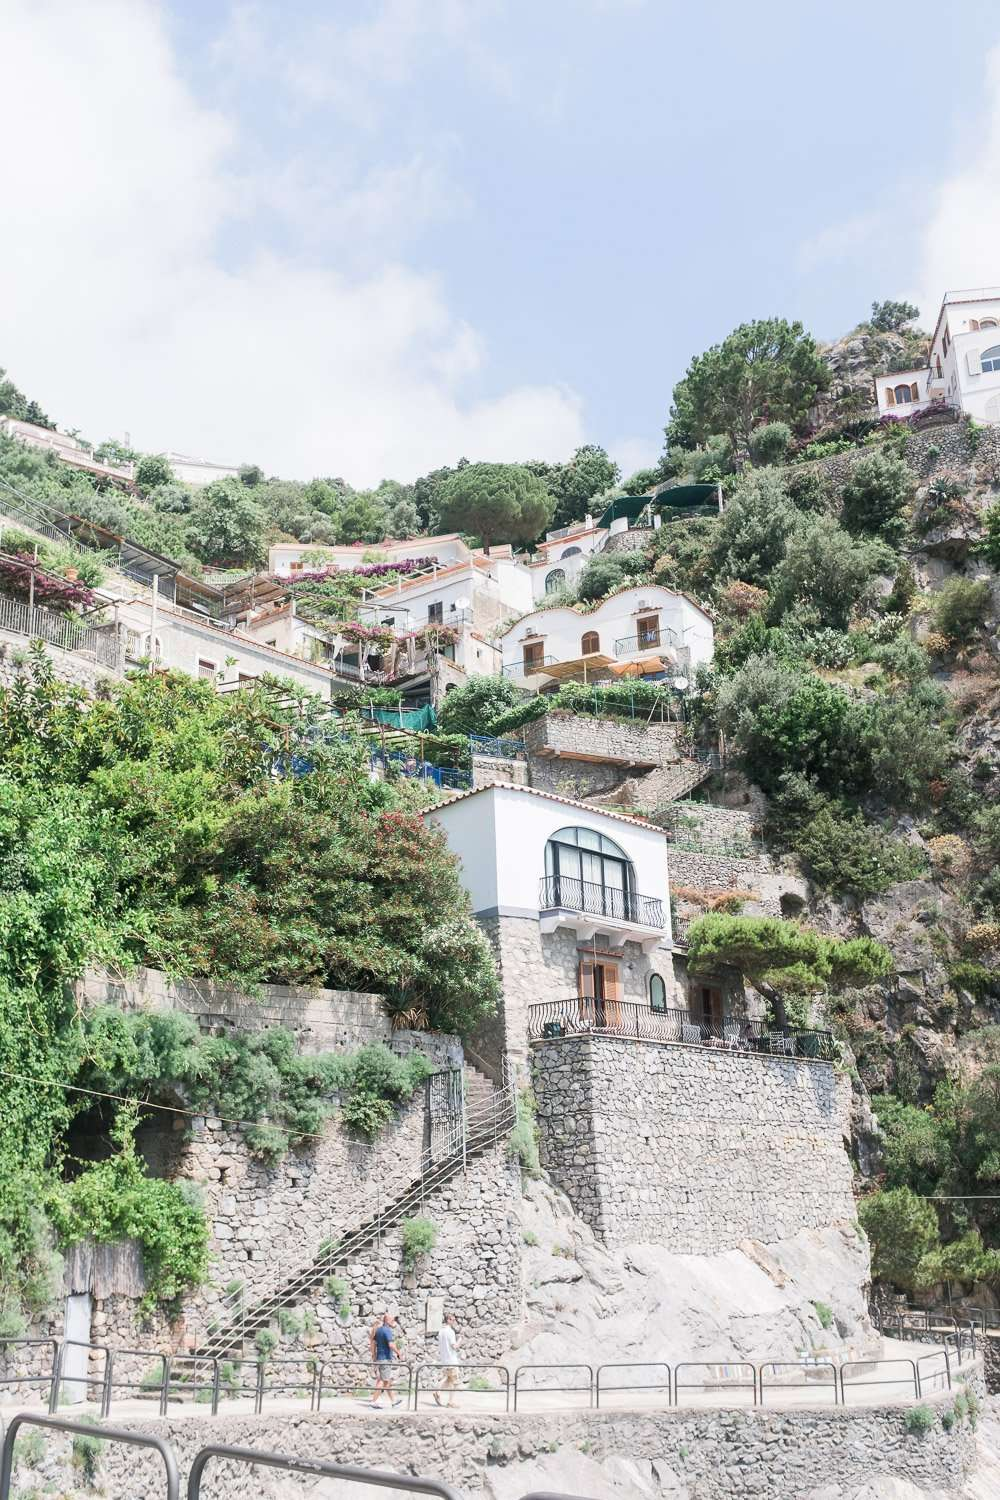 4 Days Amalfi Coast Positano Praiano Italy Itinerary - How artists and creative people travel | Venice Travel Blog | Things to Do in Venice | Prettiest parts of Amalfi Coast Positano Praiano